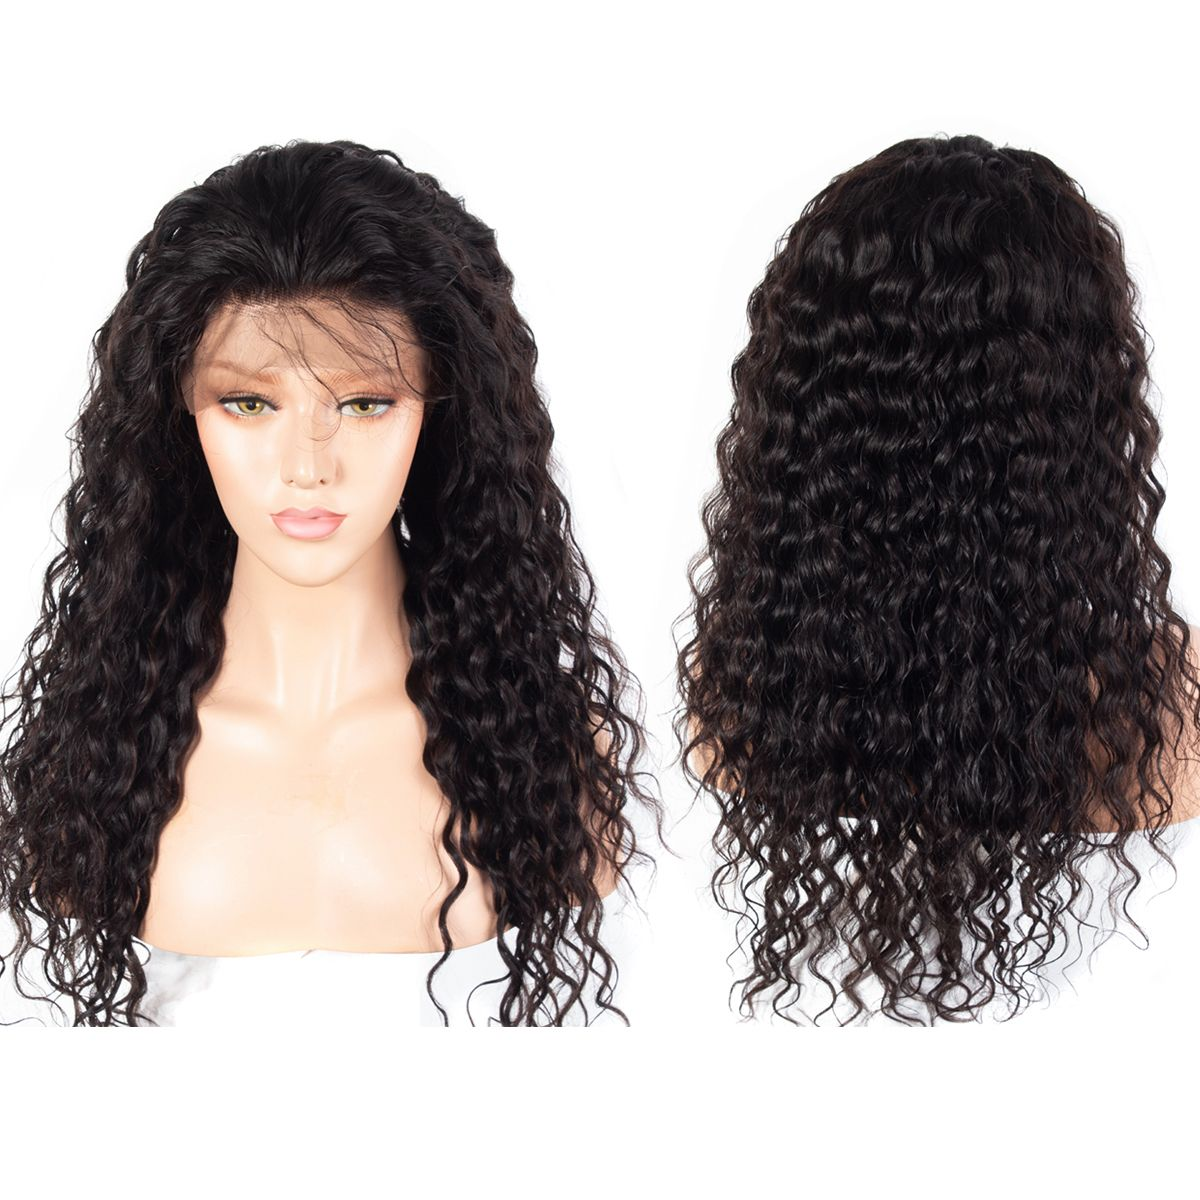 Water wave full lace wigs